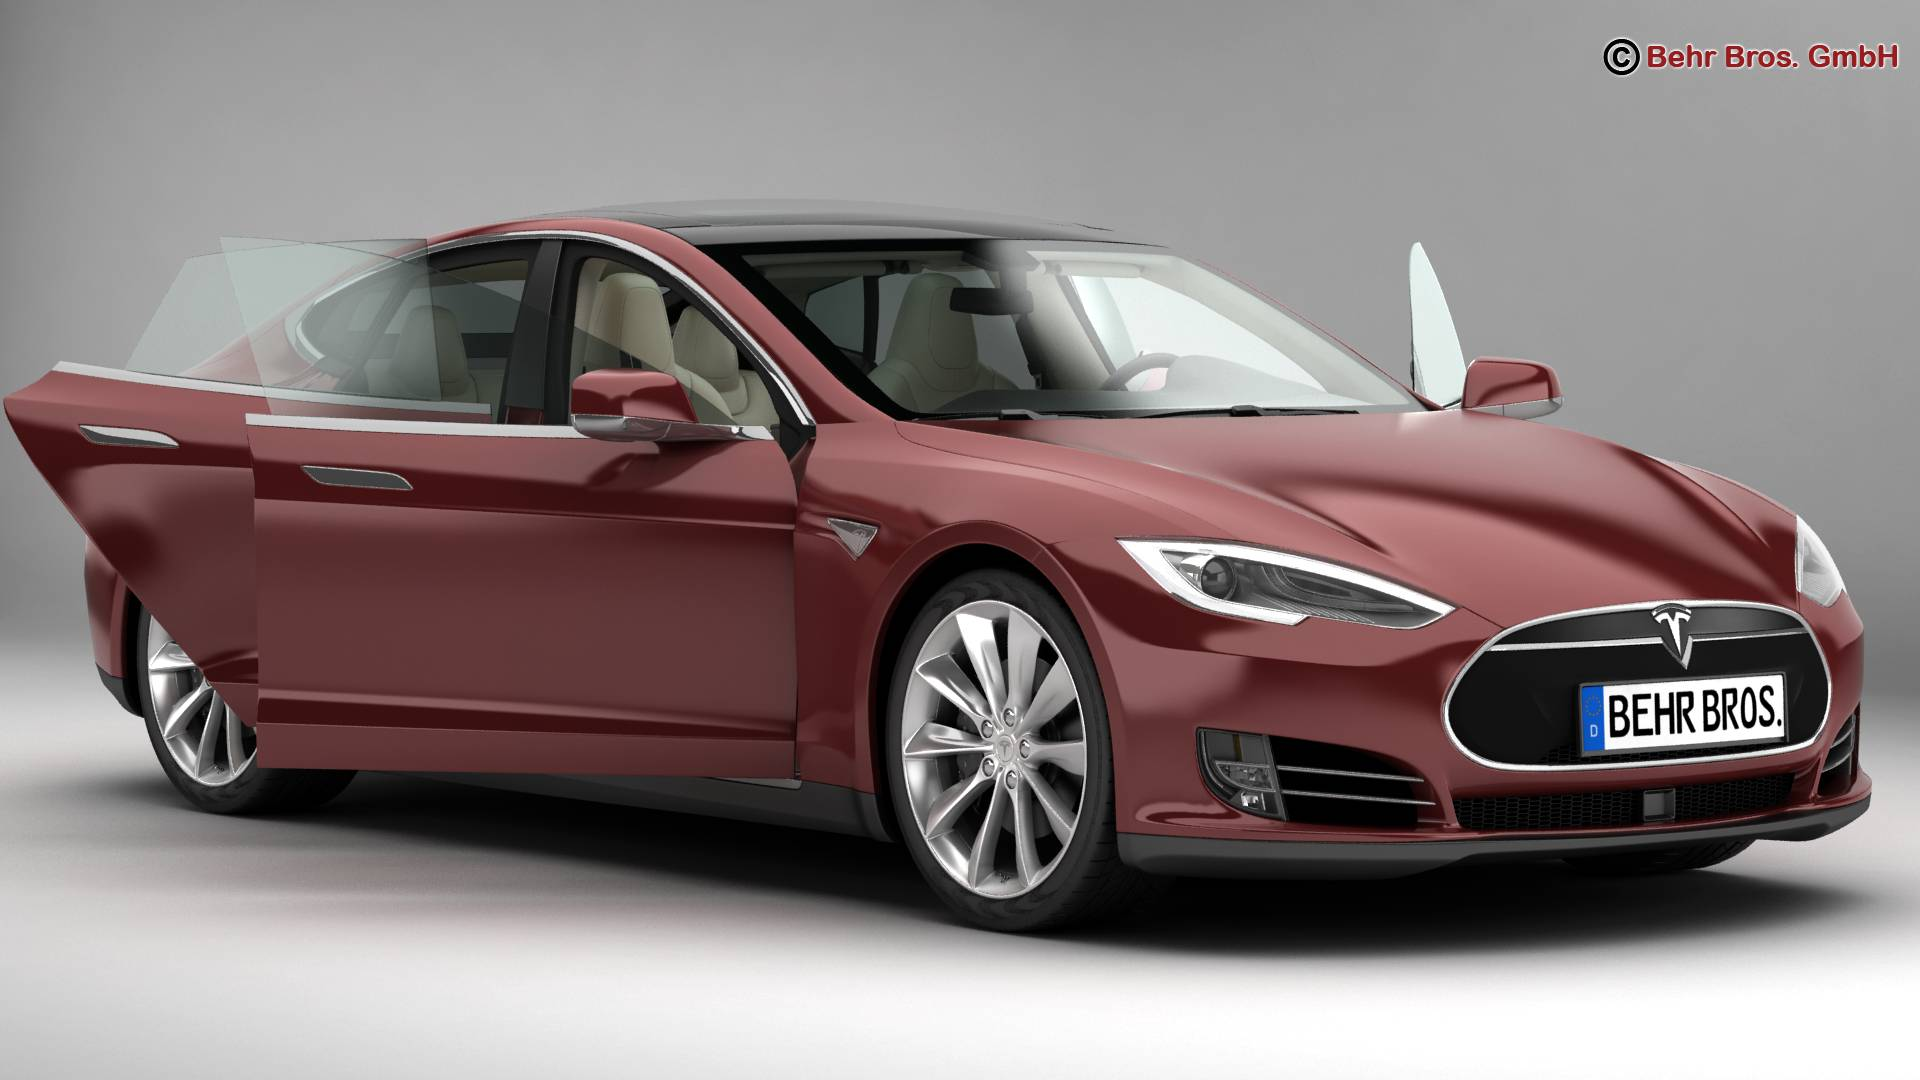 tesla model s 2015 3d model 3ds max fbx c4d lwo ma mb obj 217607